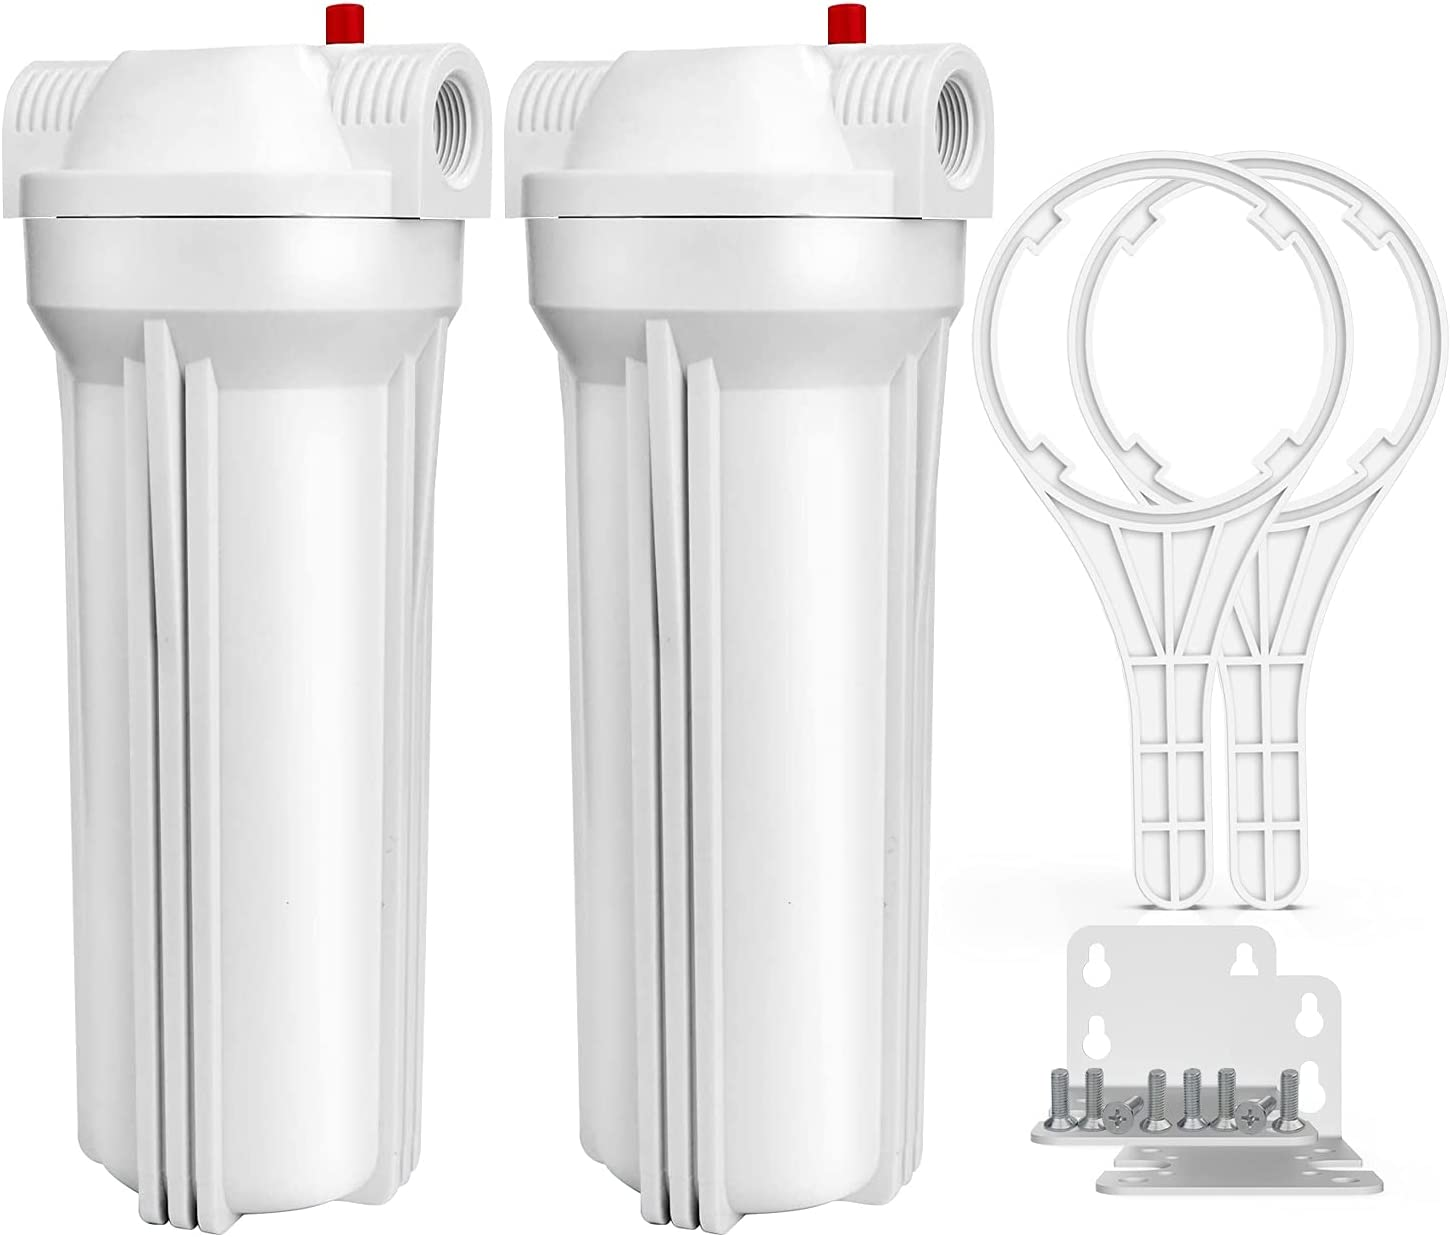 SimPure Whole House Water Filter Housing Max 81% OFF 2.5